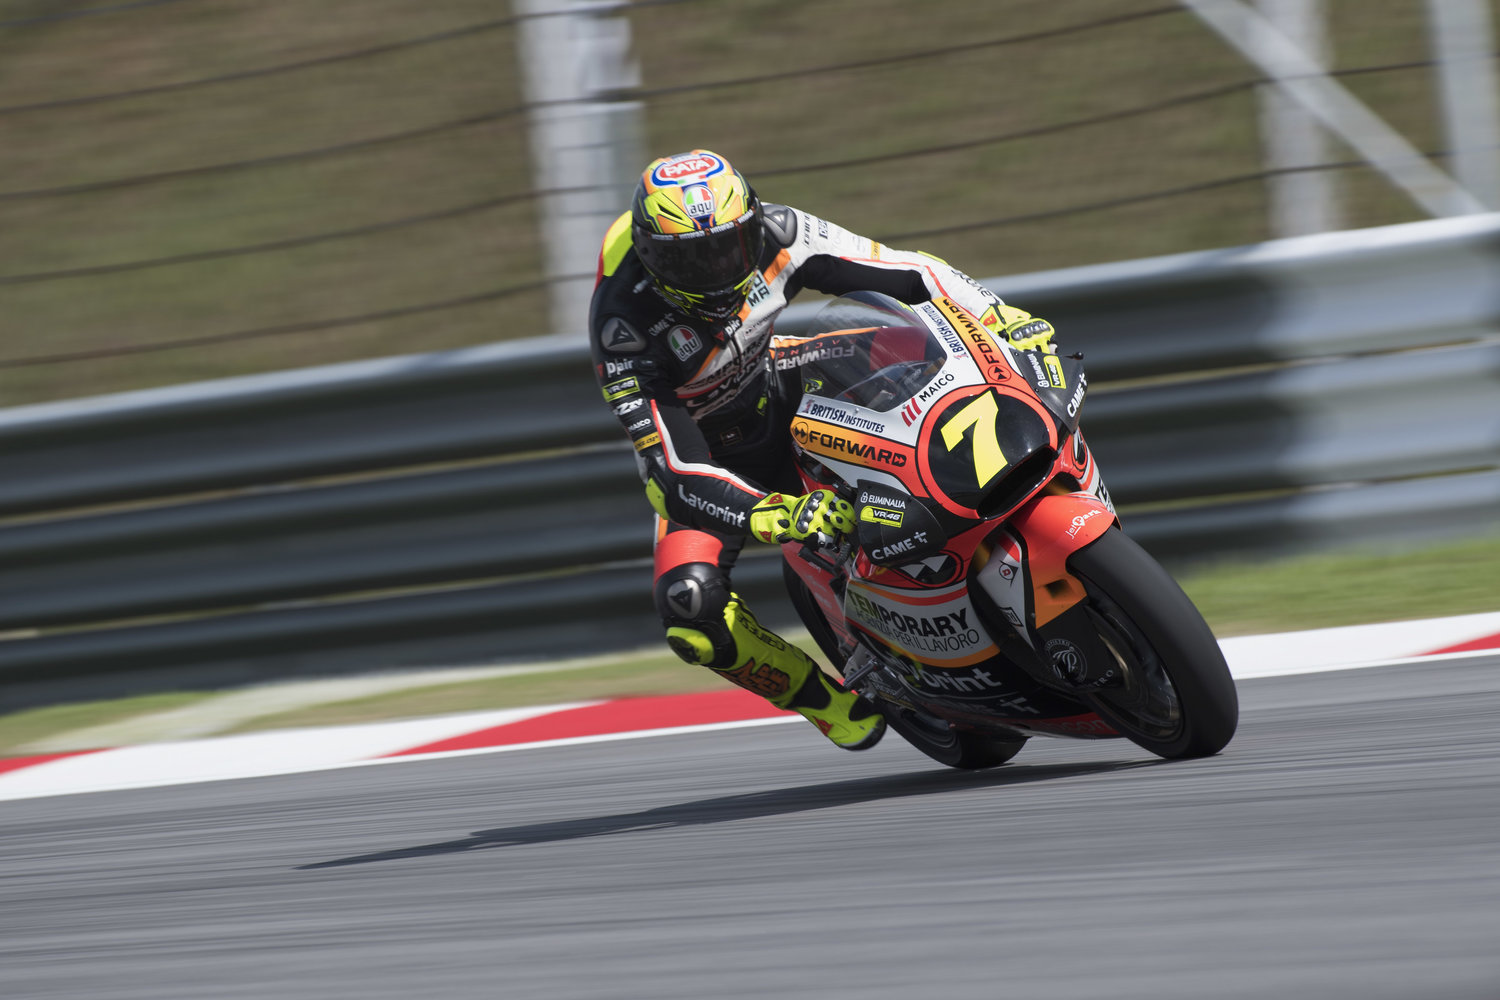 Forward Racing Team duo without luck in Malaysia